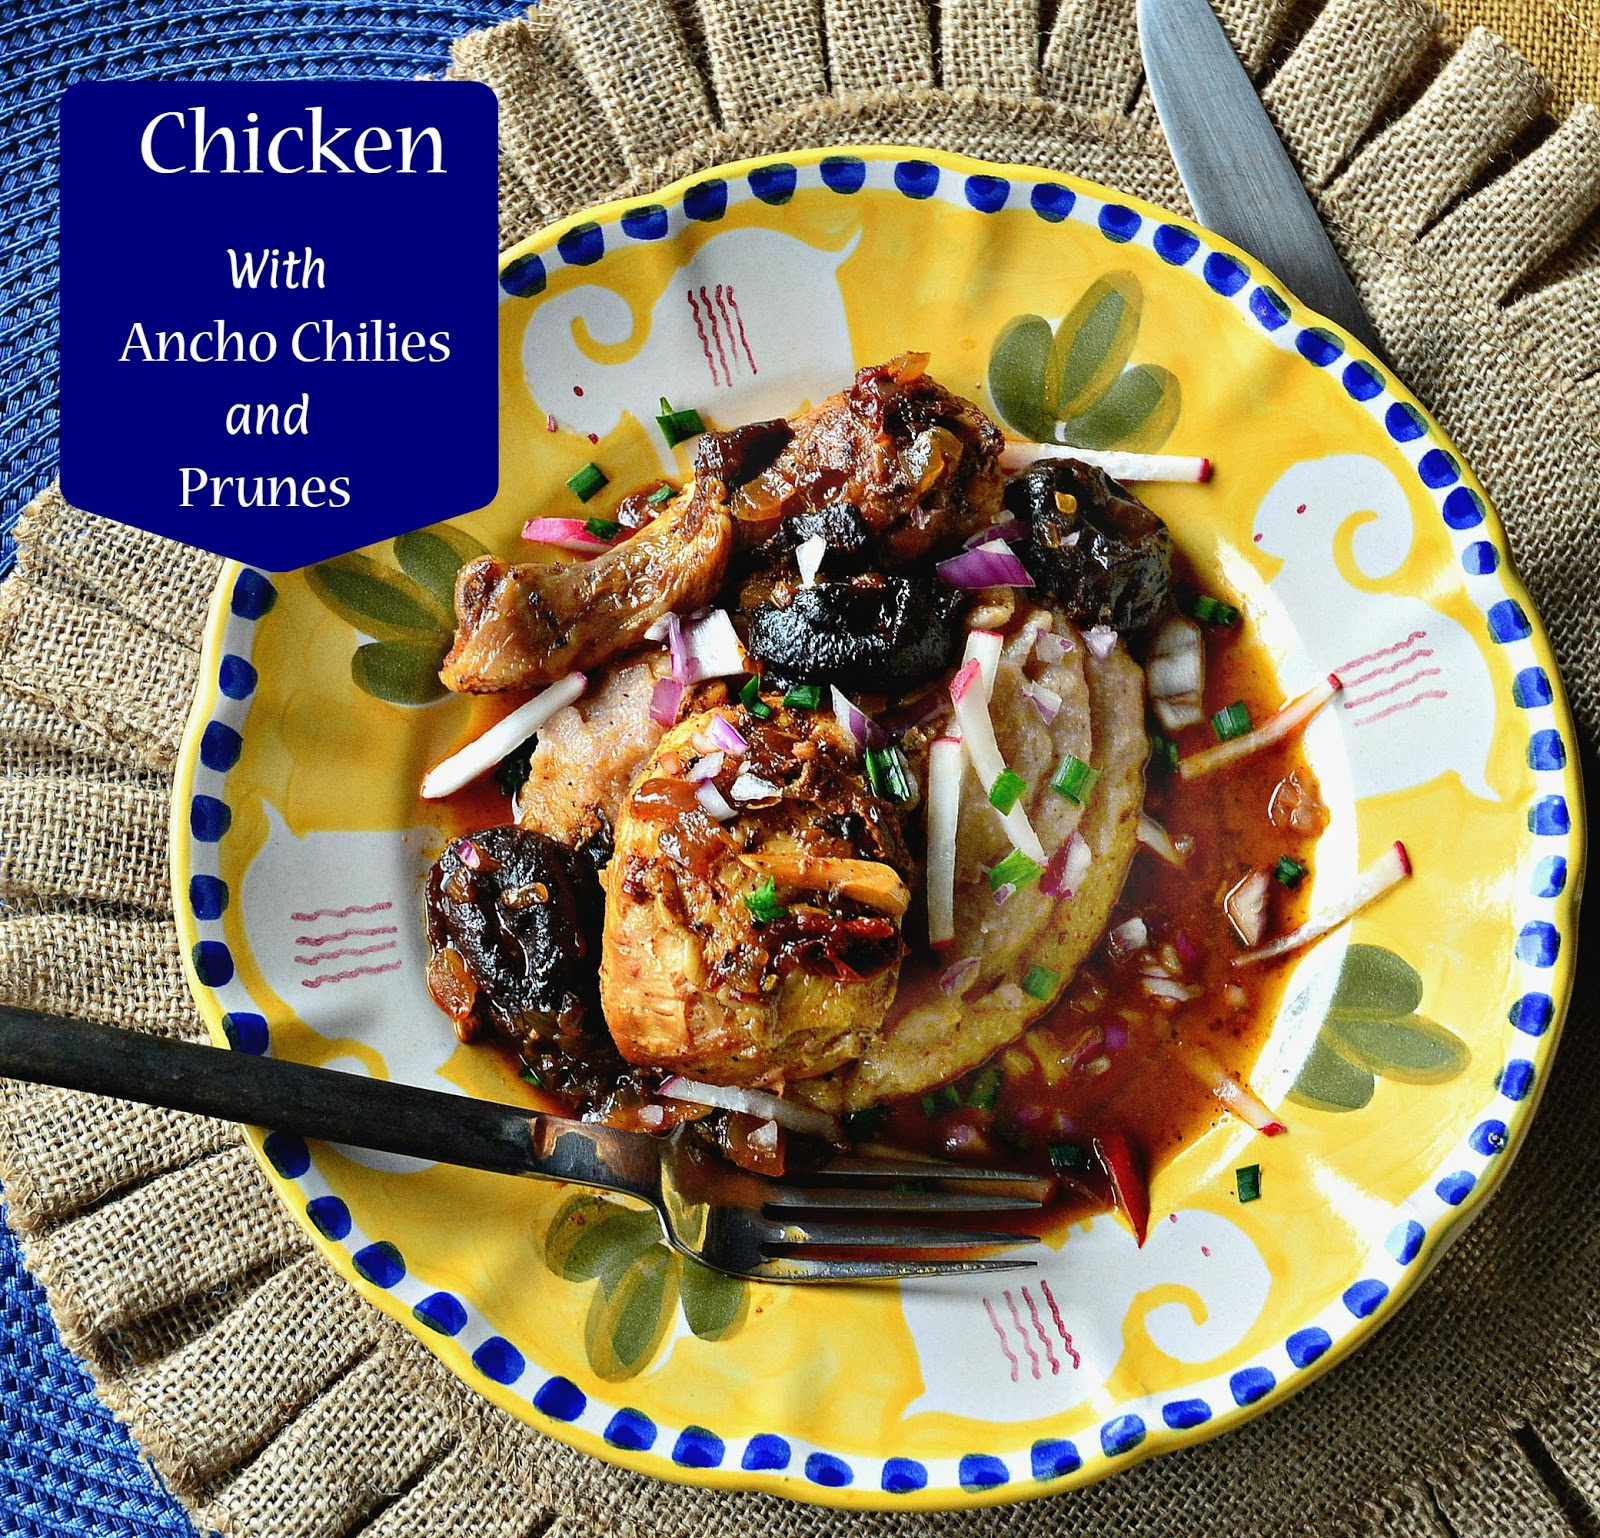 Meat with prunes. Chicken Cooking Recipe 13